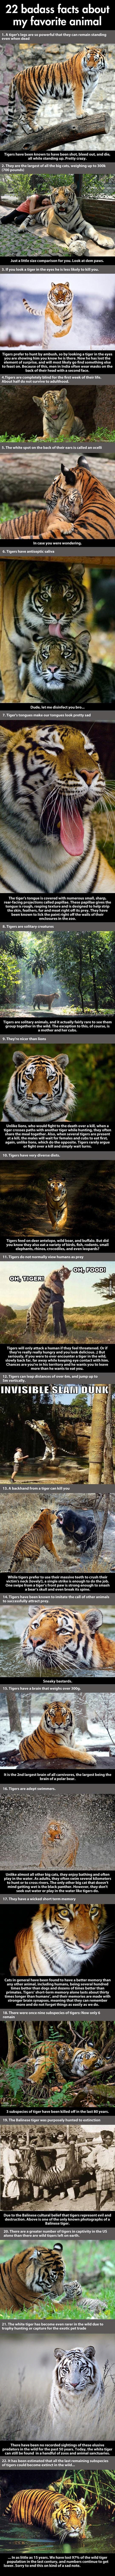 22 Badass Facts About Tigers:::these creatures are so beautiful...